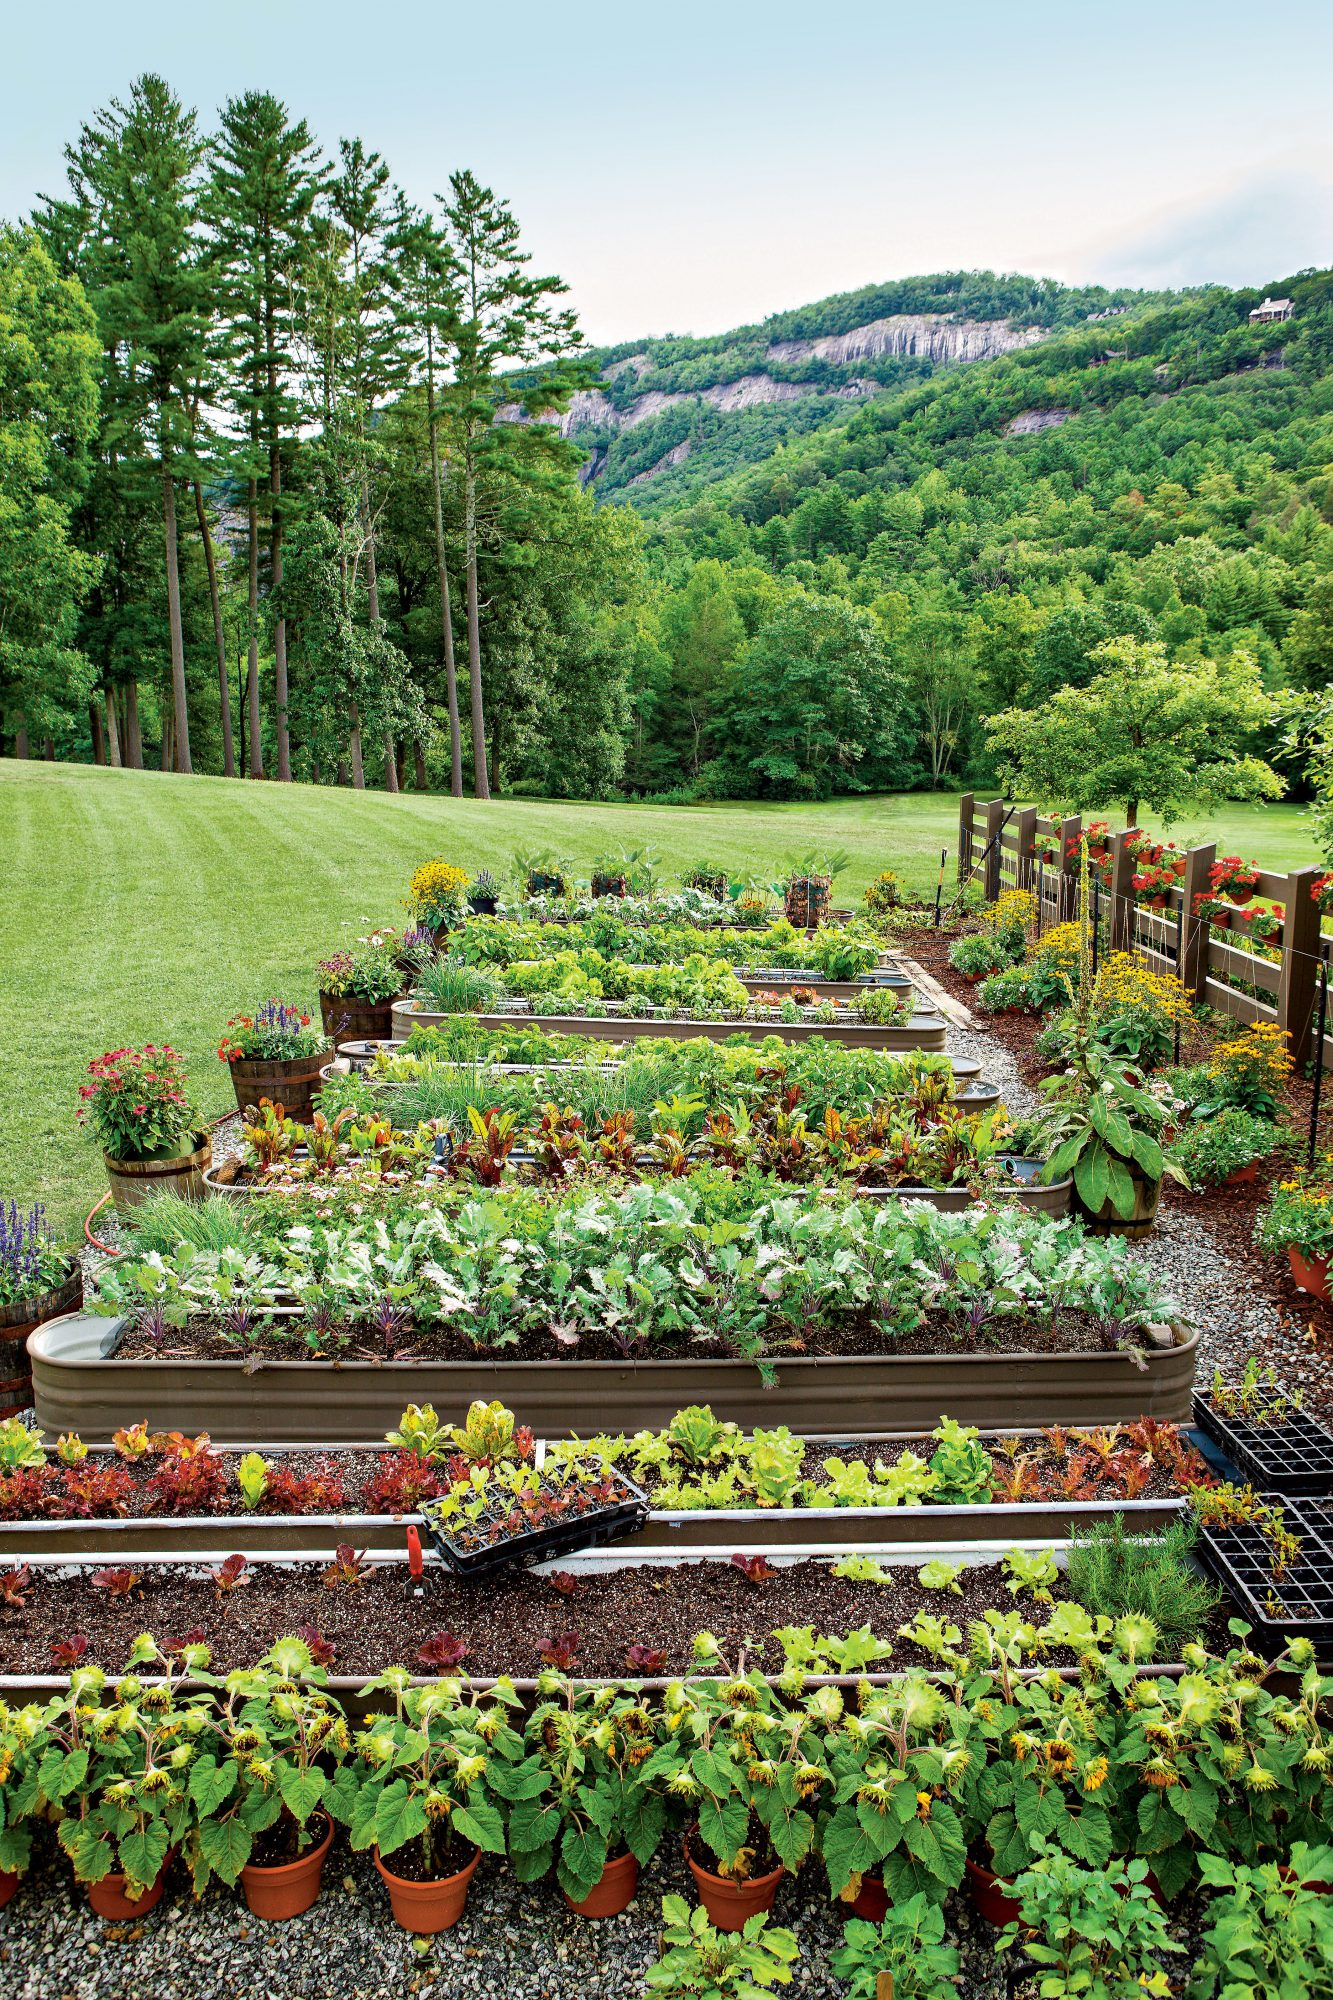 How To Keep Your Garden Growing All Summer Long - Southern ...